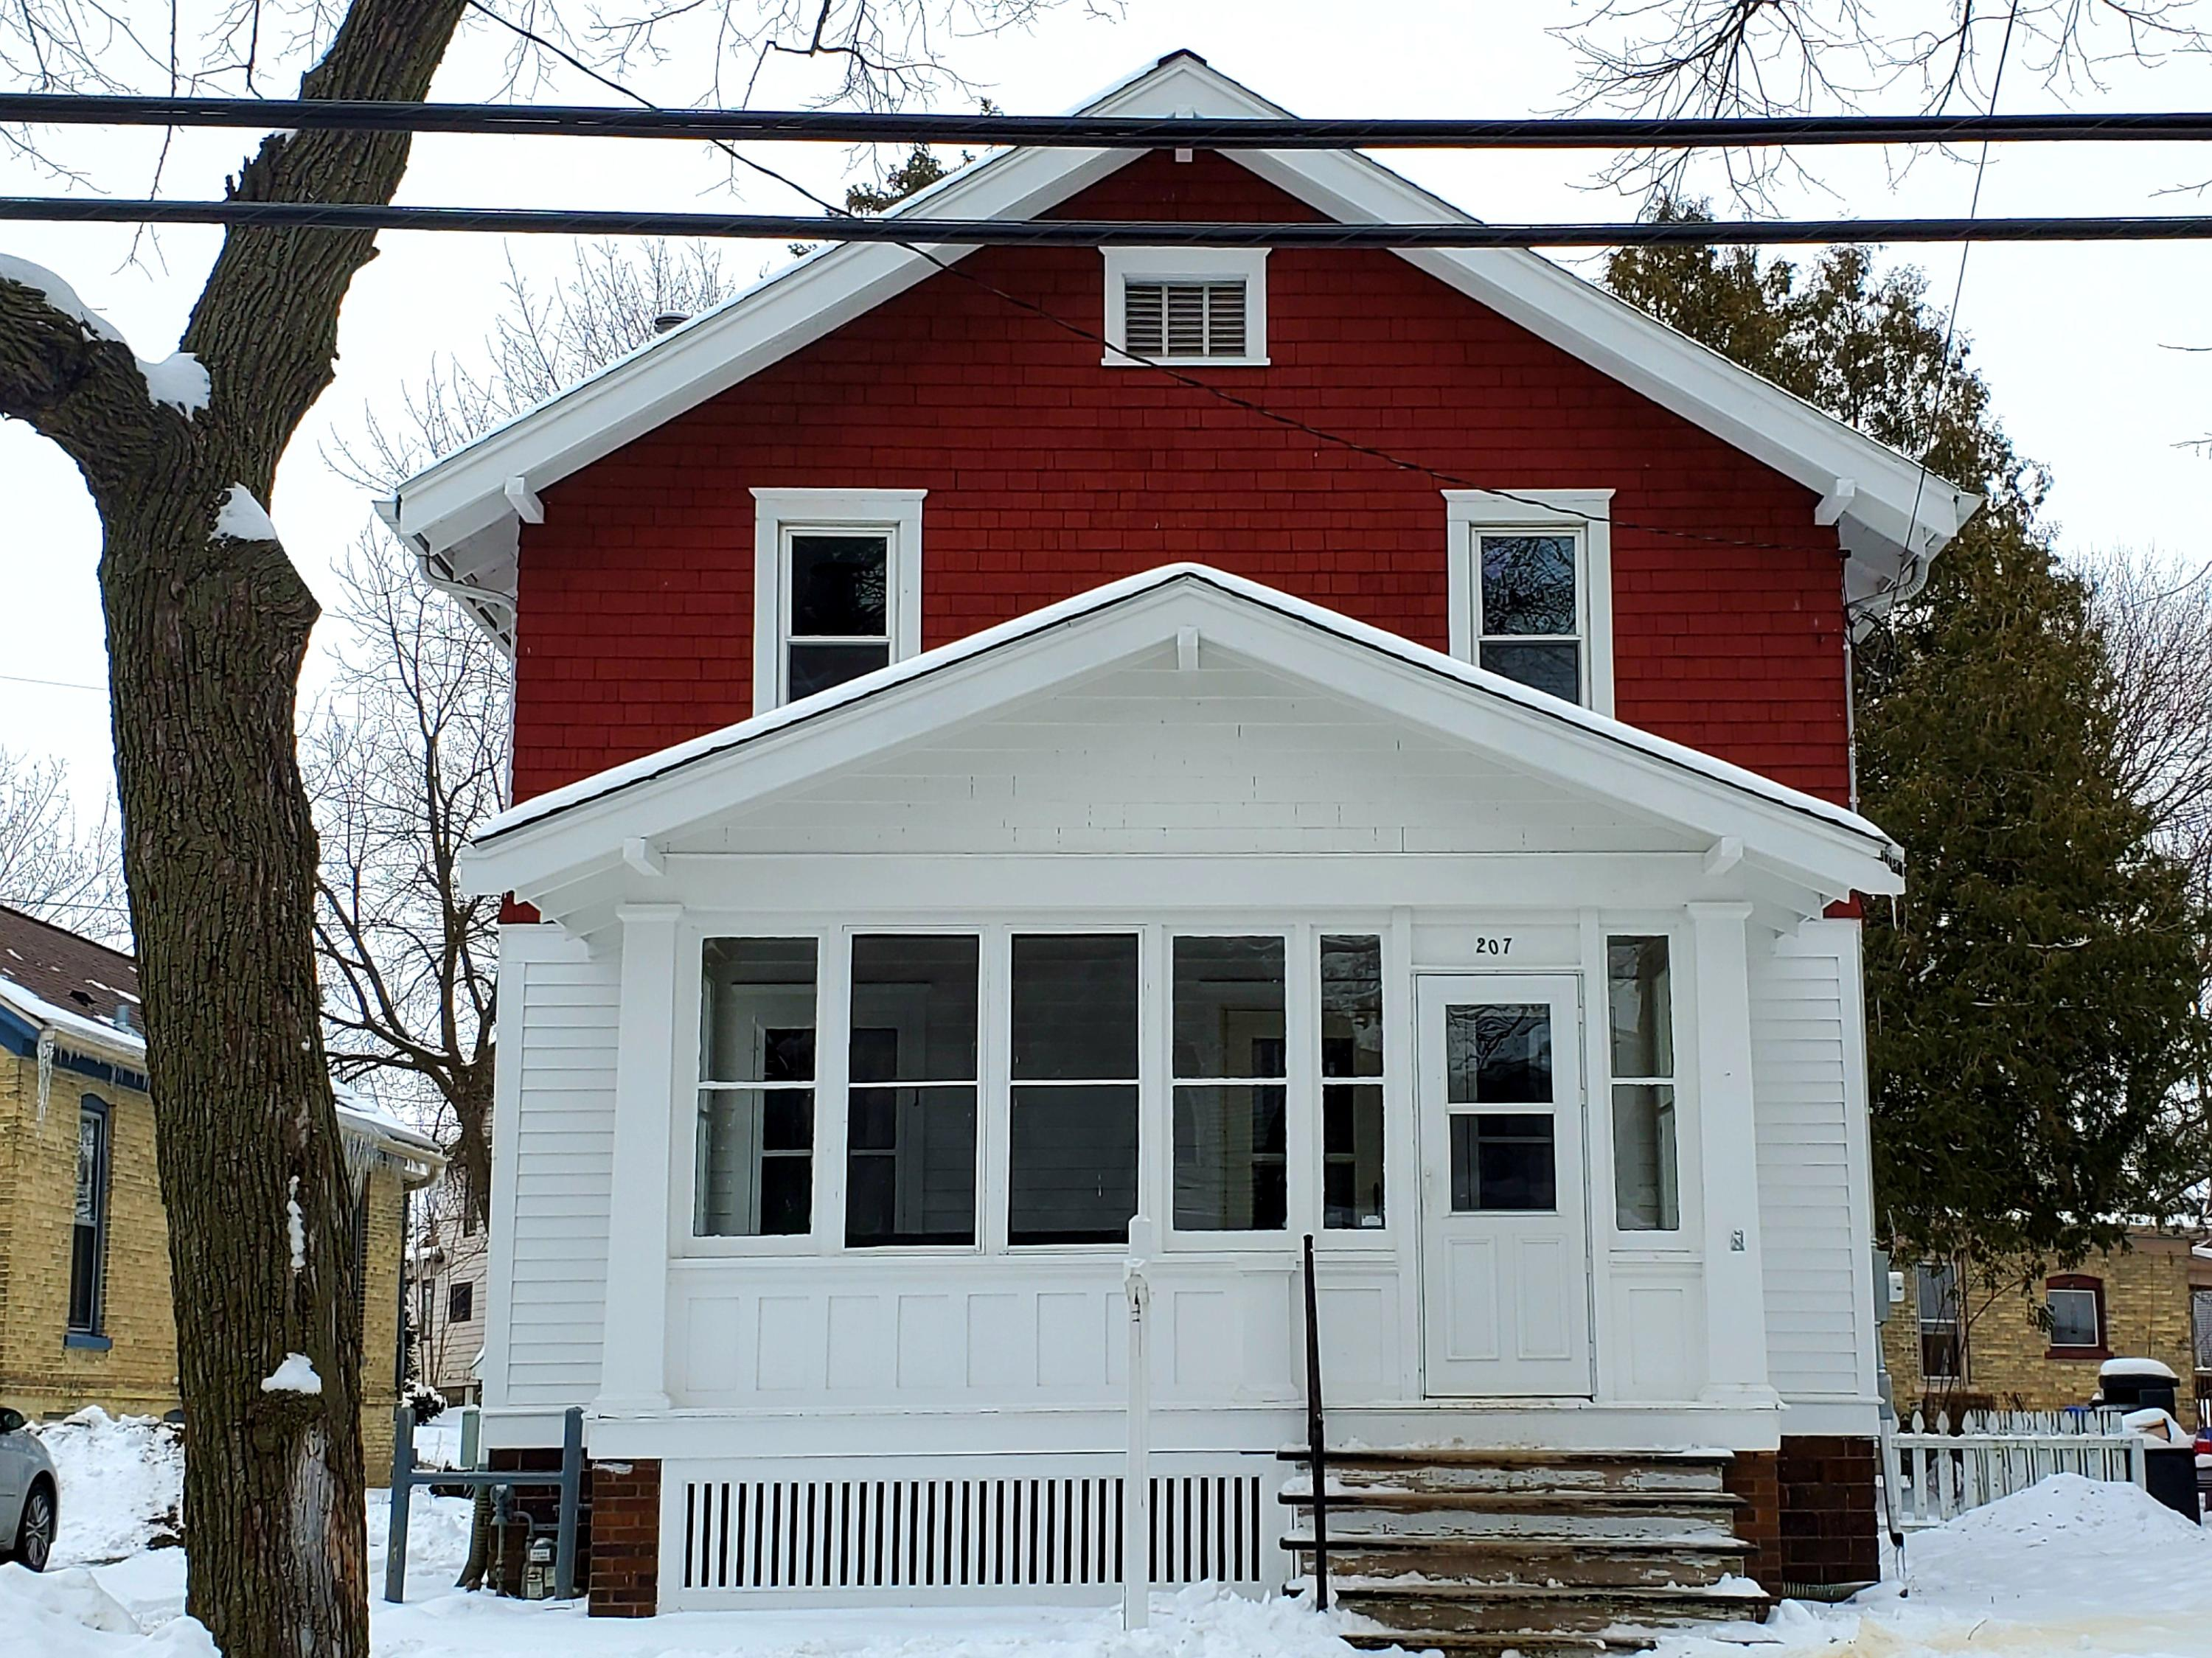 207 Ninth St, Watertown, Wisconsin 53094, 3 Bedrooms Bedrooms, 6 Rooms Rooms,1 BathroomBathrooms,Single-family,For Sale,Ninth St,1723511